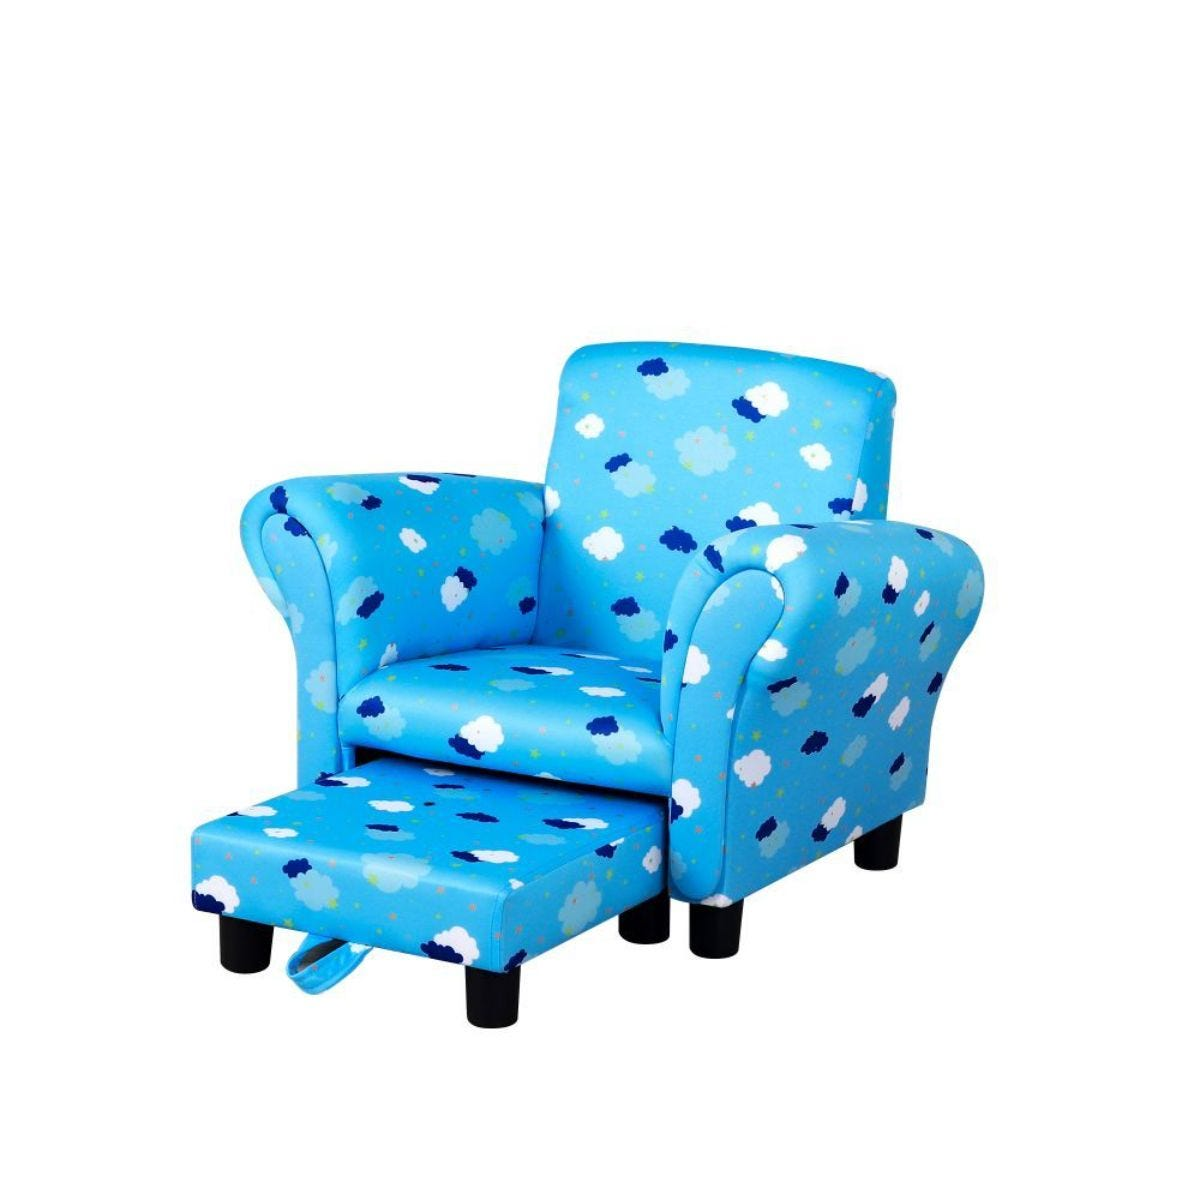 Cute Cloud Star Childs Armchair With Footrest Blue